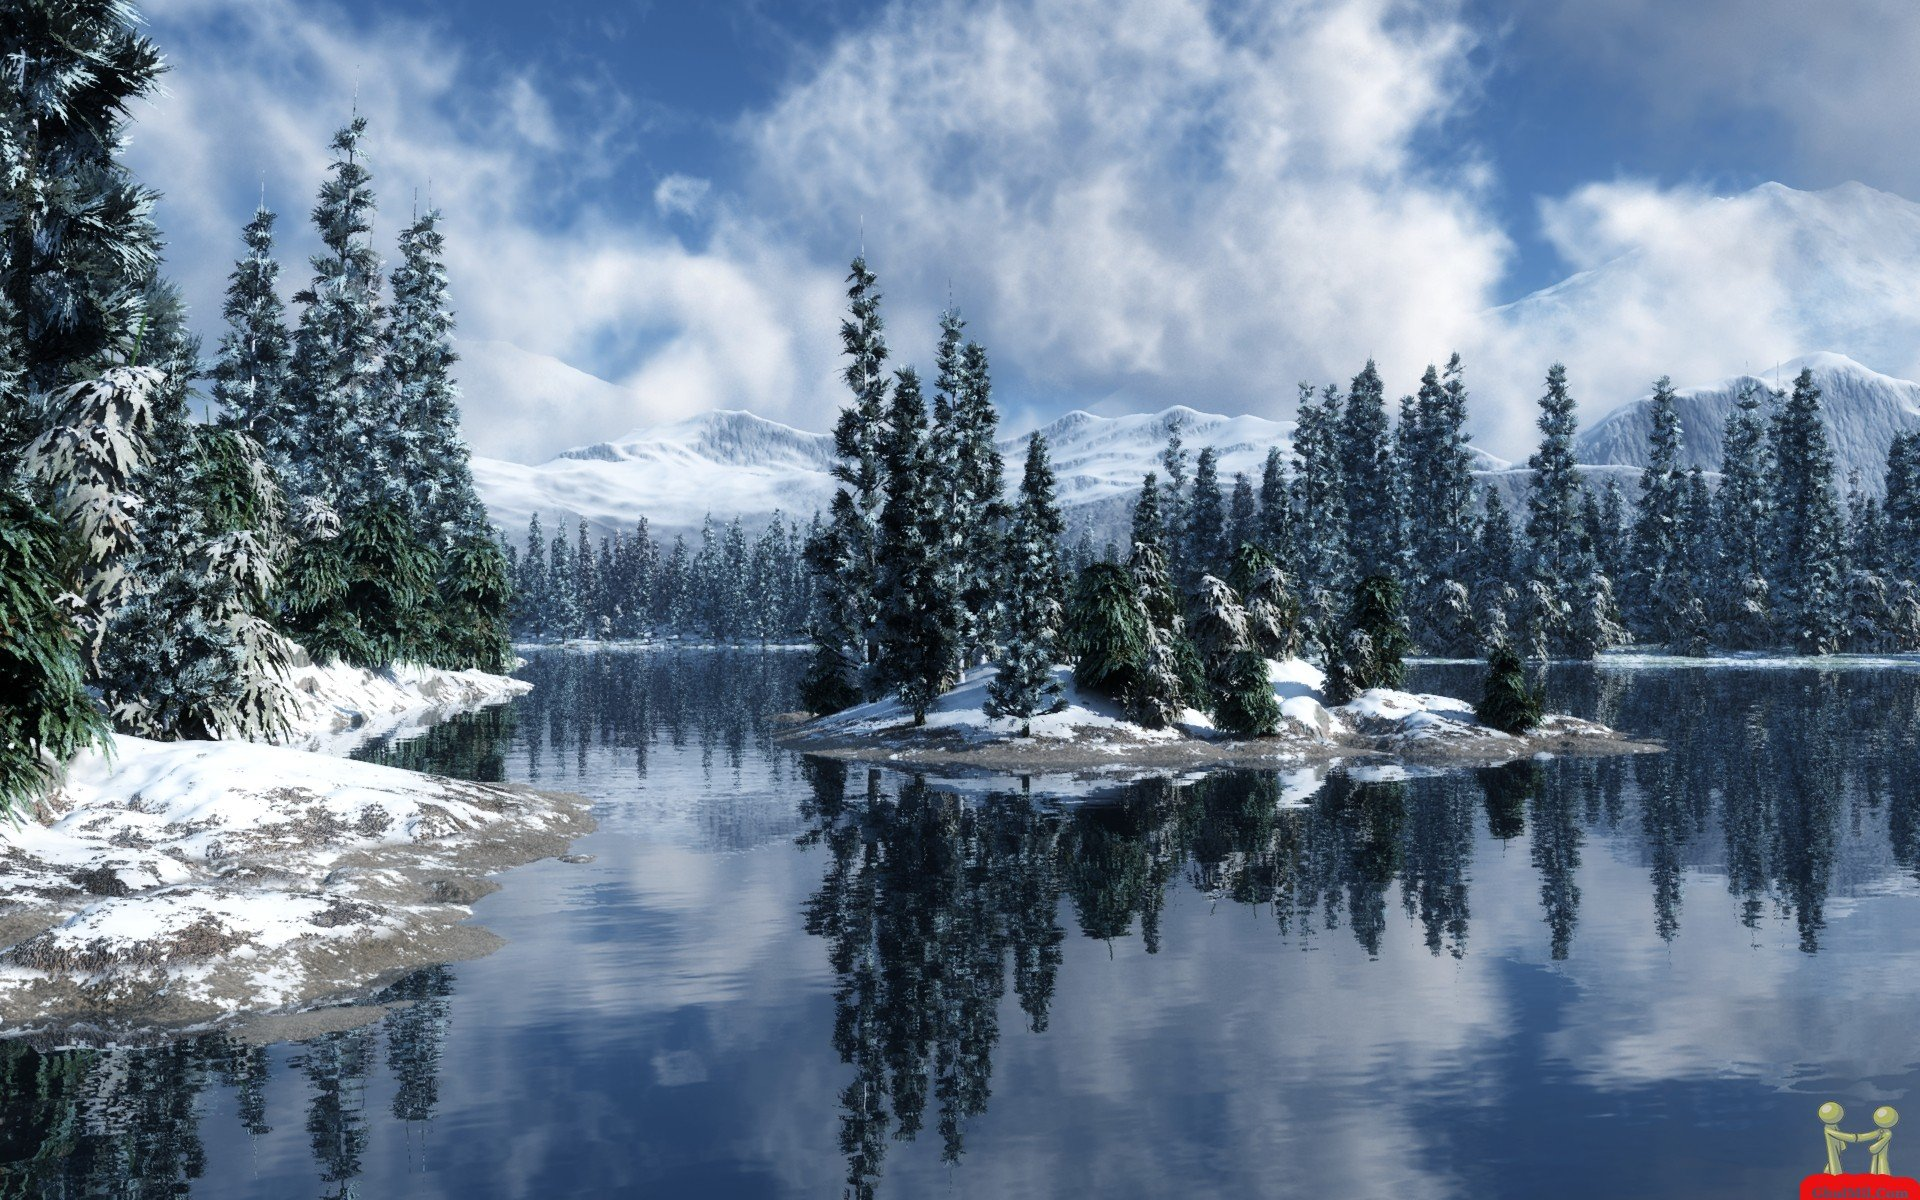 Snowy trees by the lake Wallpaper Wallpapers   High resolution 1920x1200